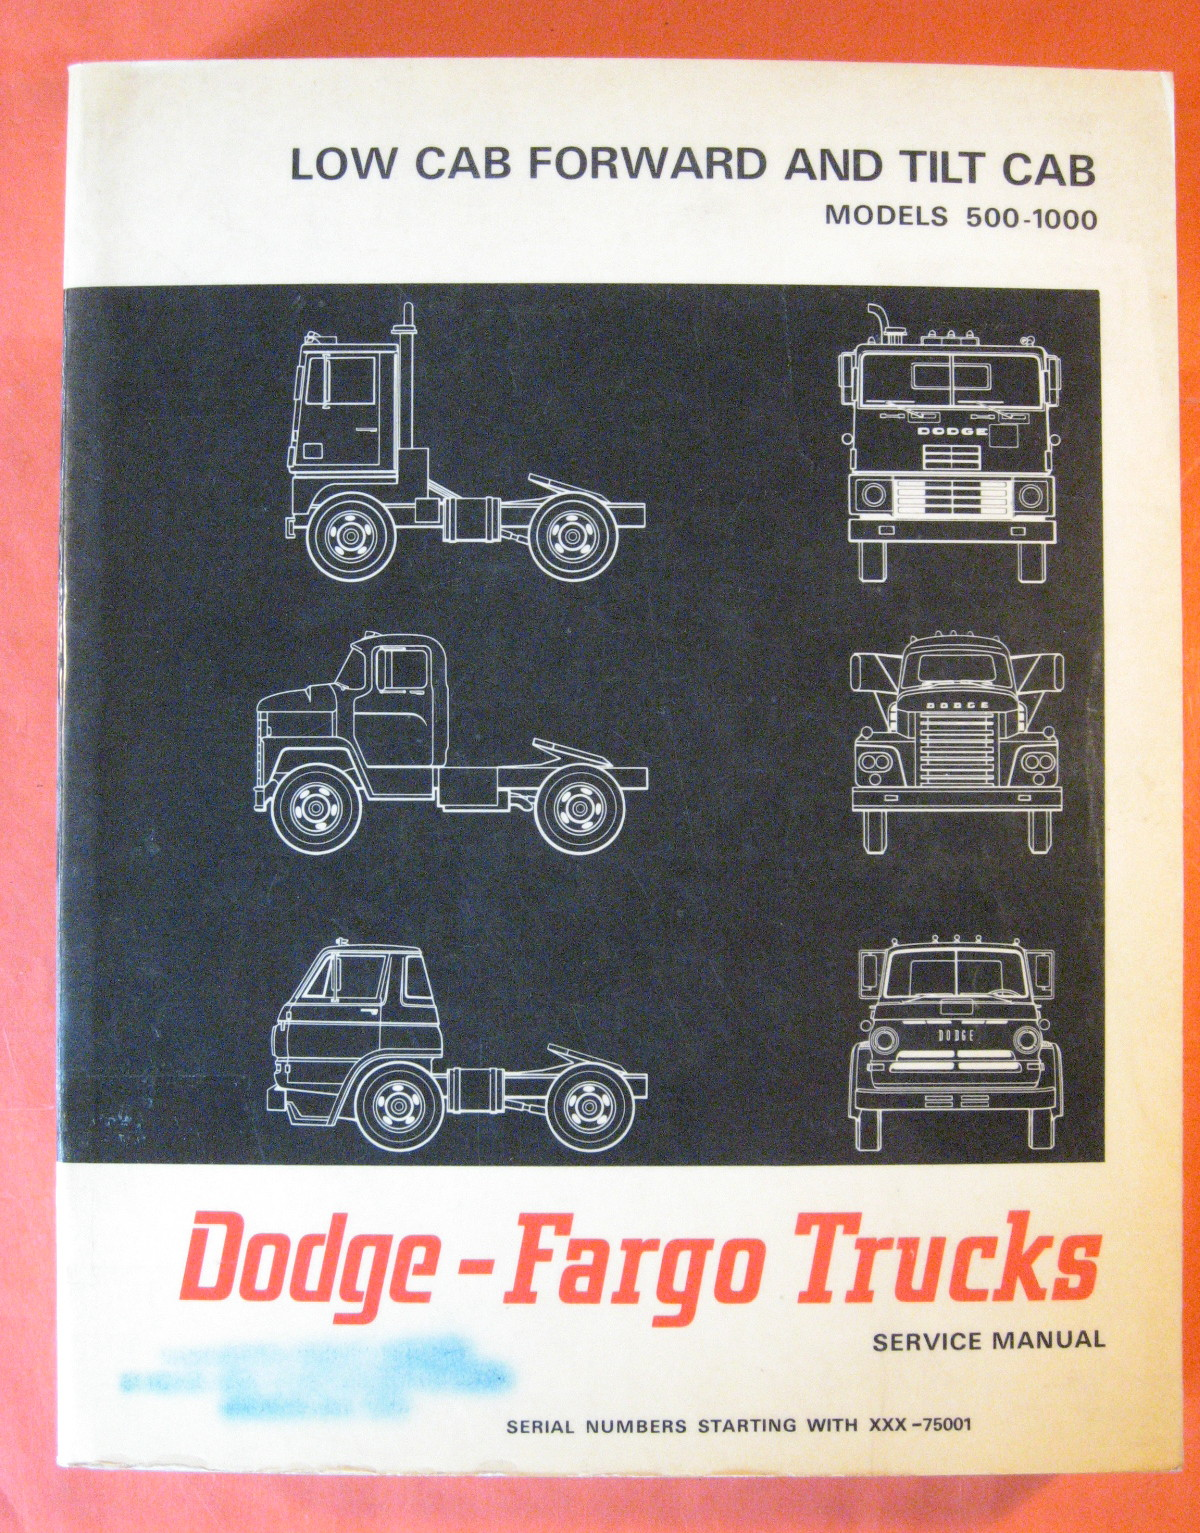 Image for Dodge - Fargo Trucks Models 500 Through 1000 Low Cab Forward Tilt Cab Service Manual